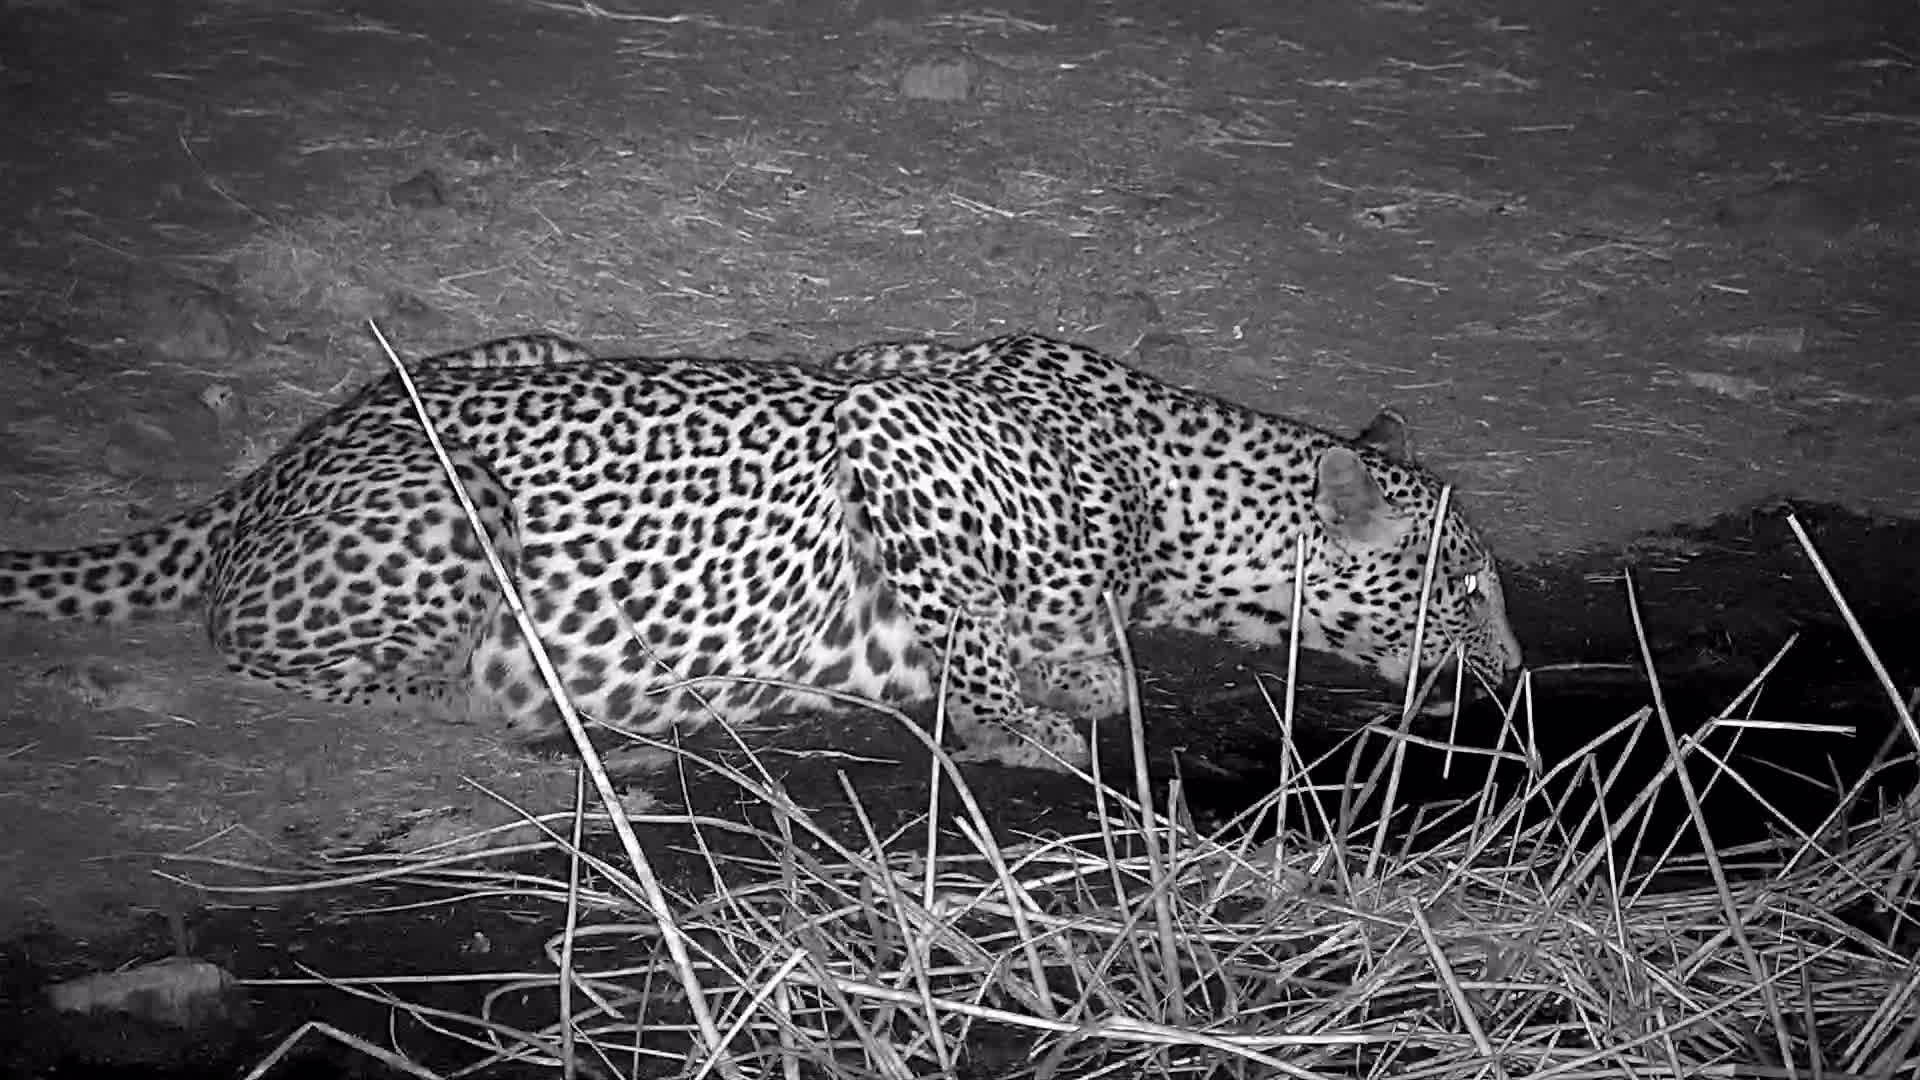 VIDEO: Leopard with a full belly enjoys a drink  Pt 1